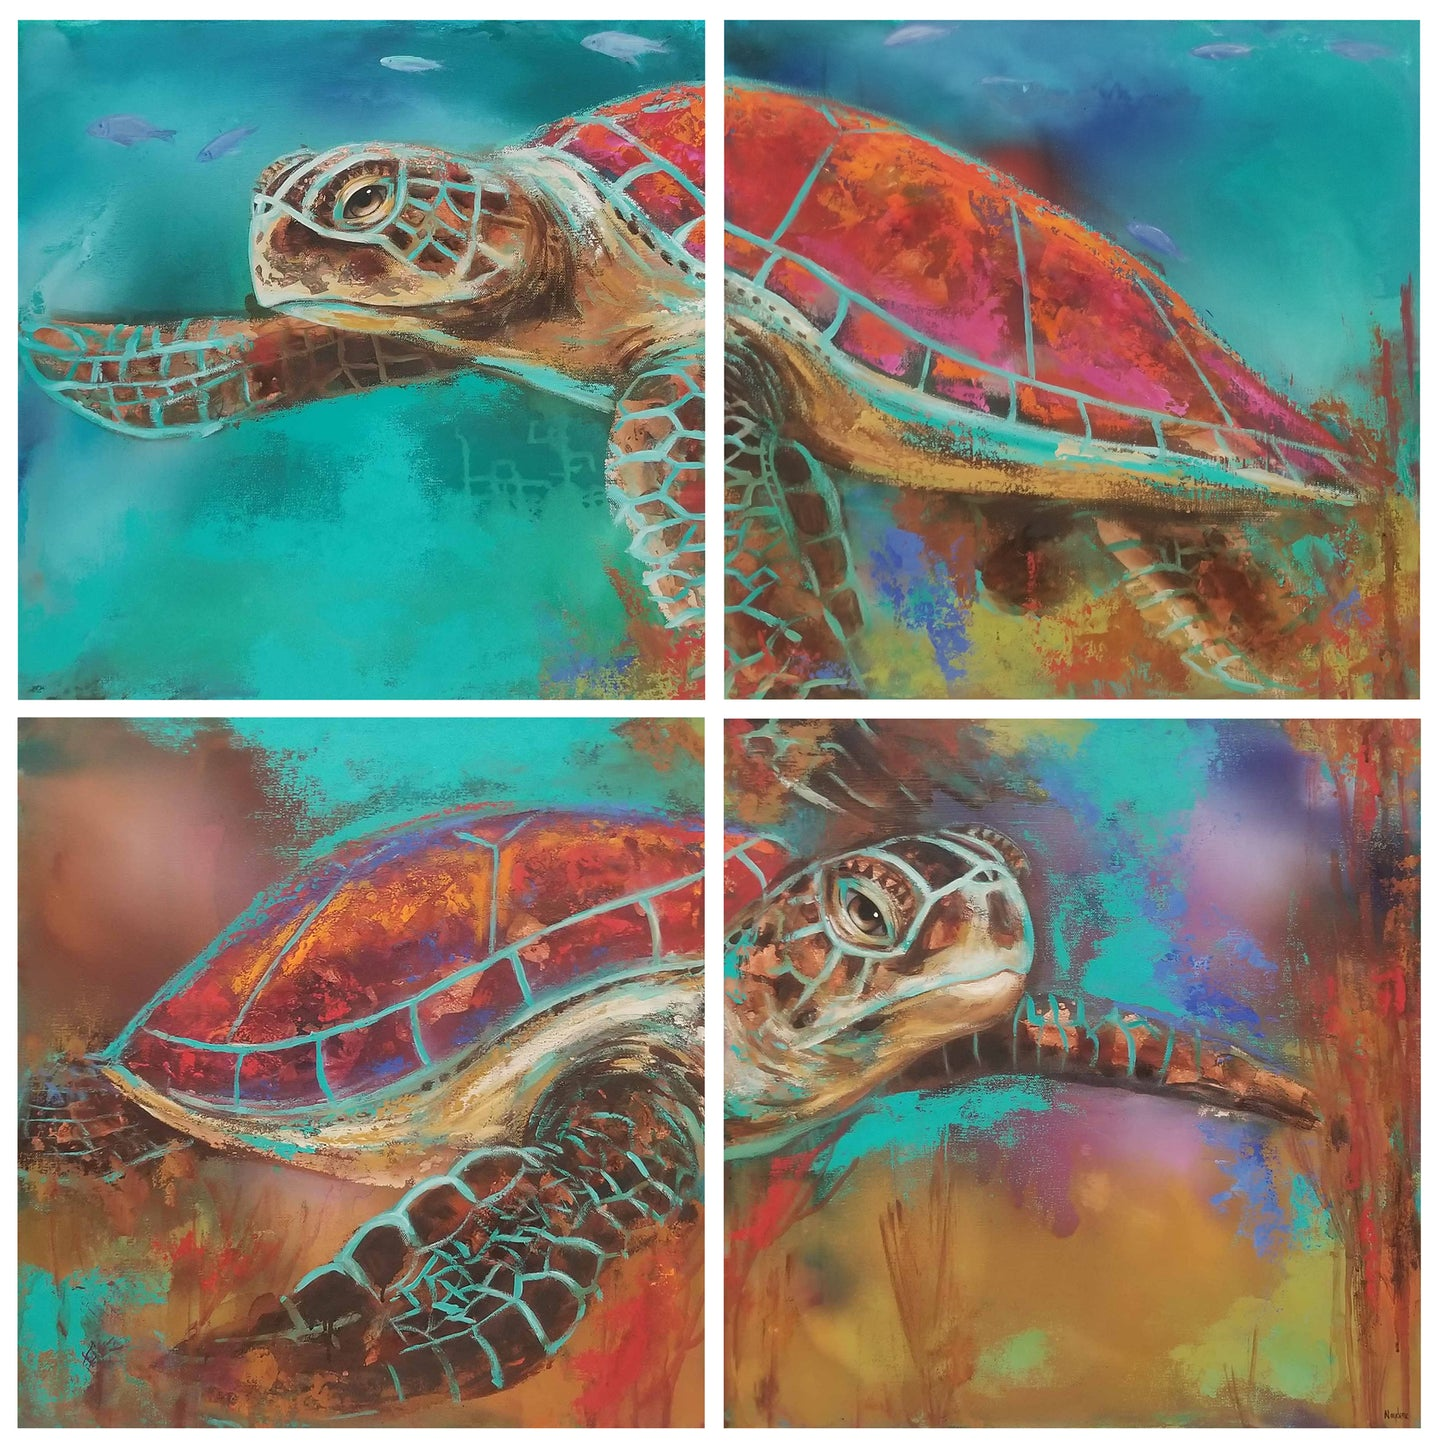 Two Turtles By Naydene Gonnella